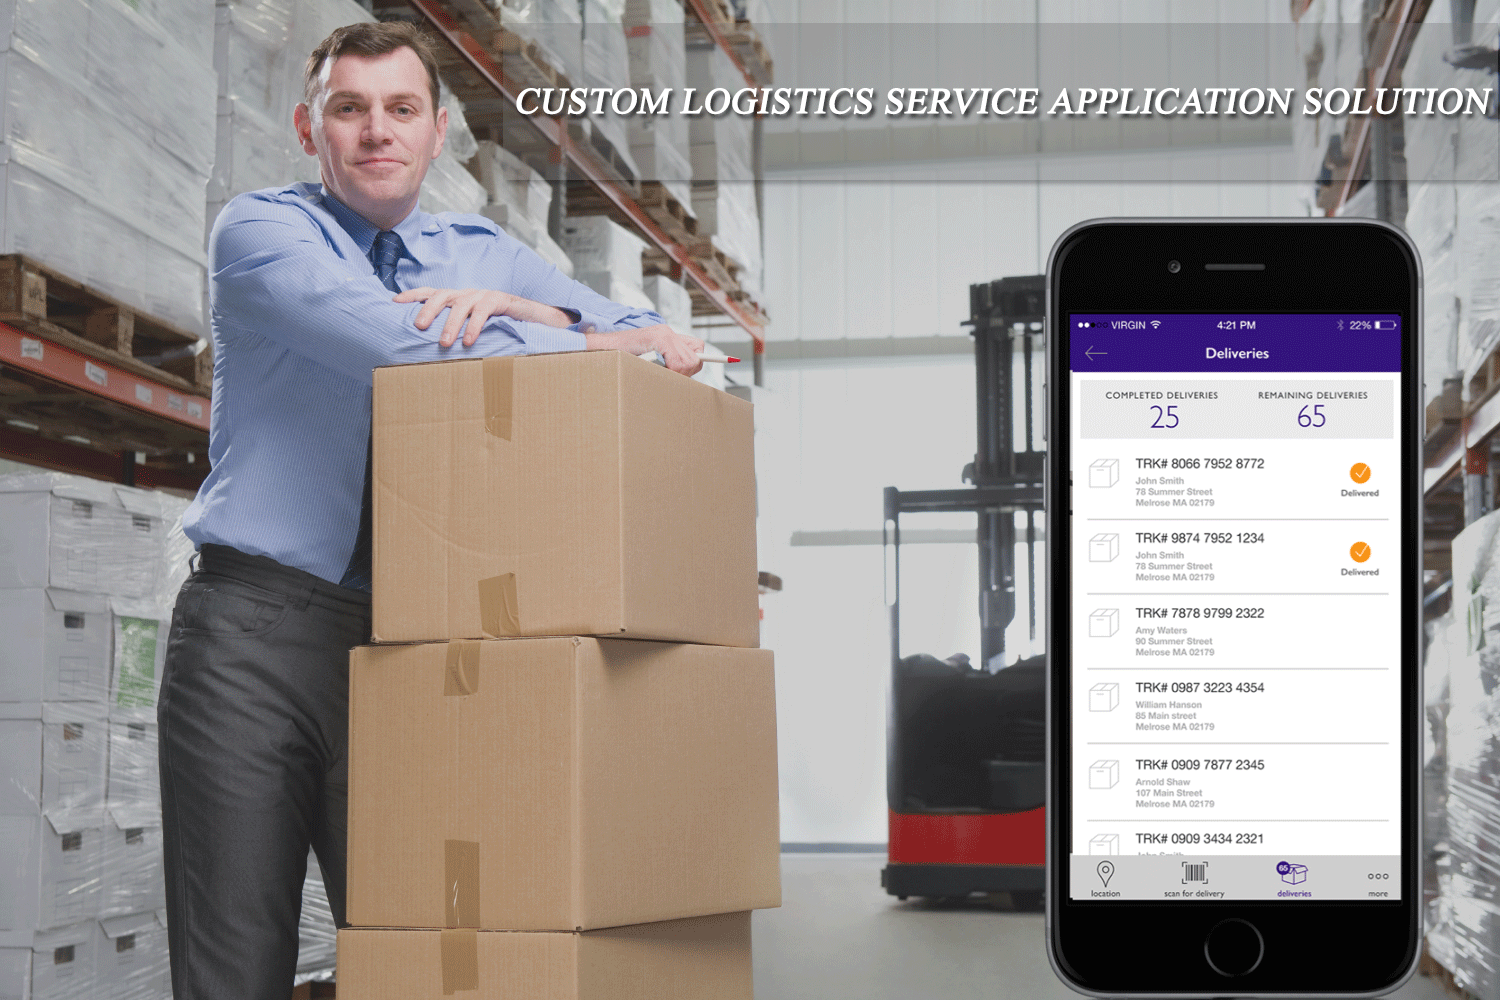 Mobile App Solution For Mr. Marc's Logistics business Requirement